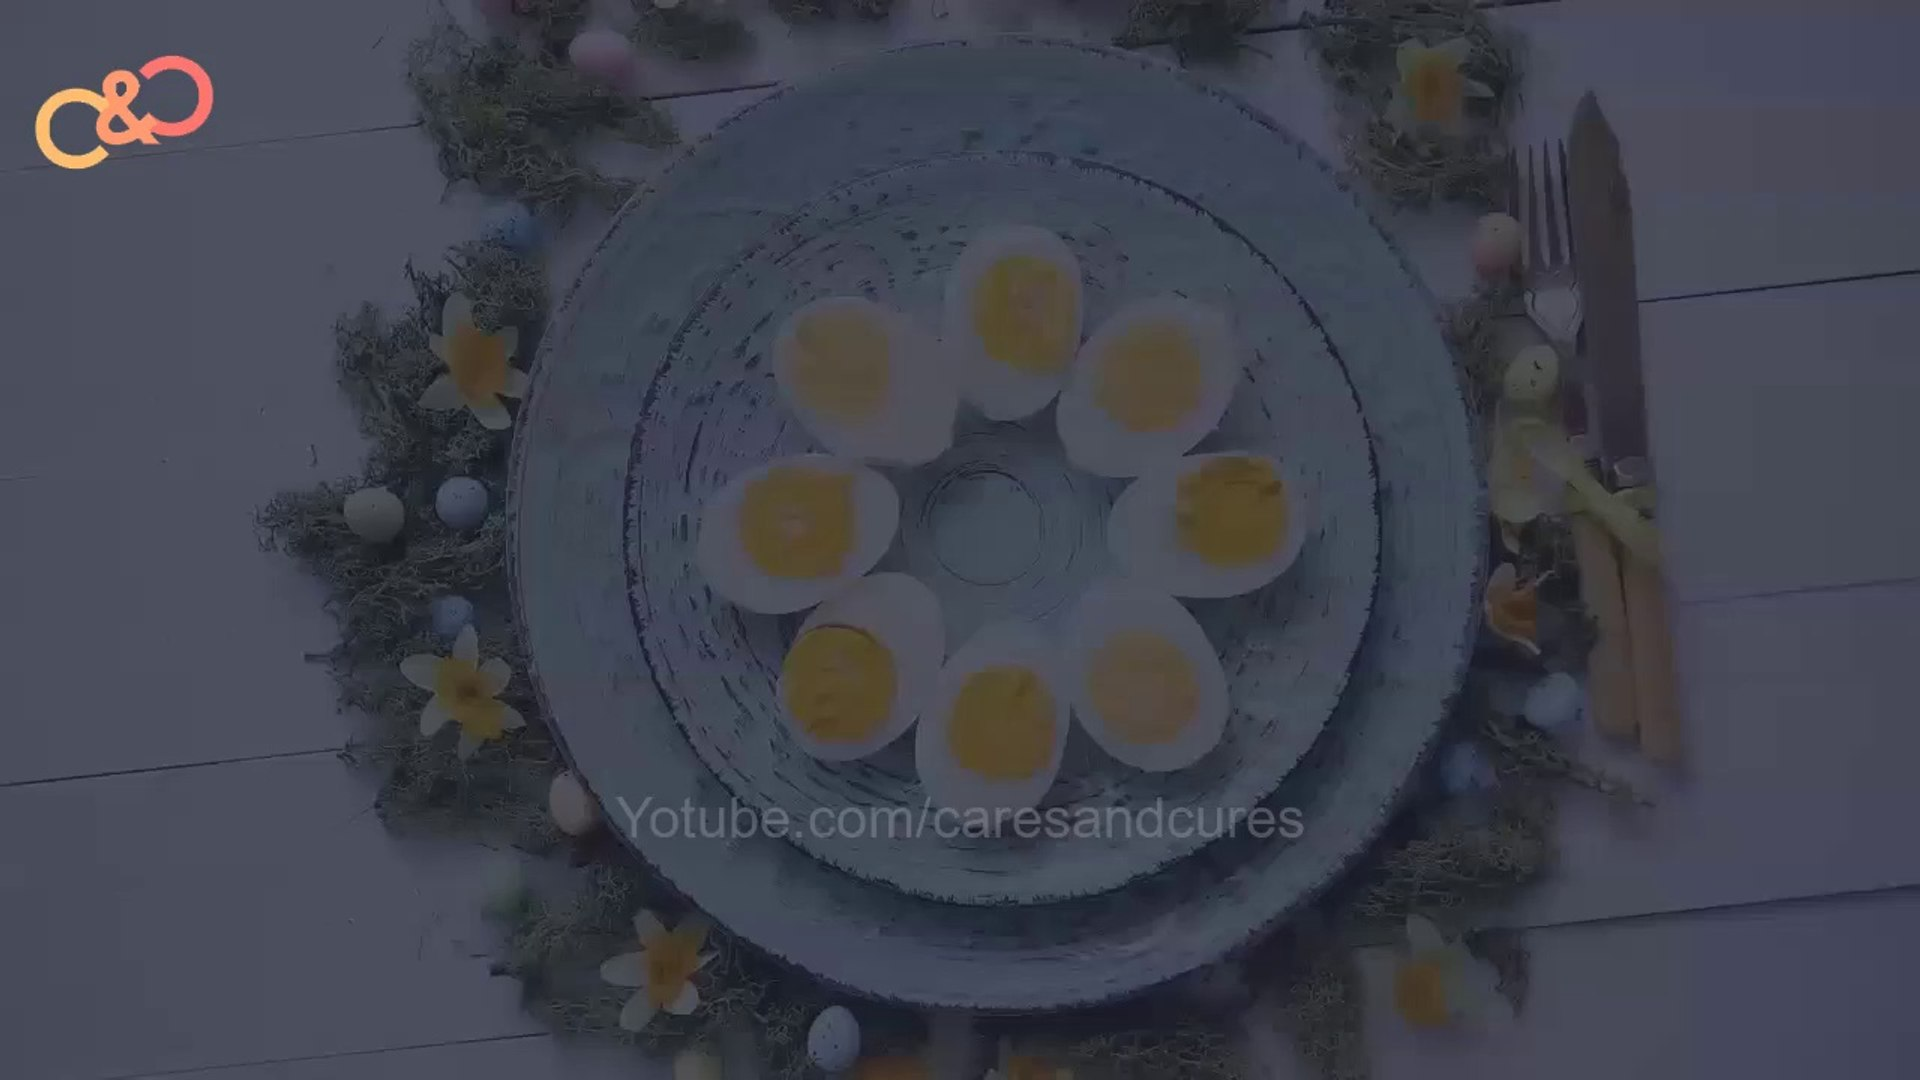 Eggs Diet  - Boiled Egg Diet - Boiled Egg Diet Plan - Egg Diet Plan For Weight Loss